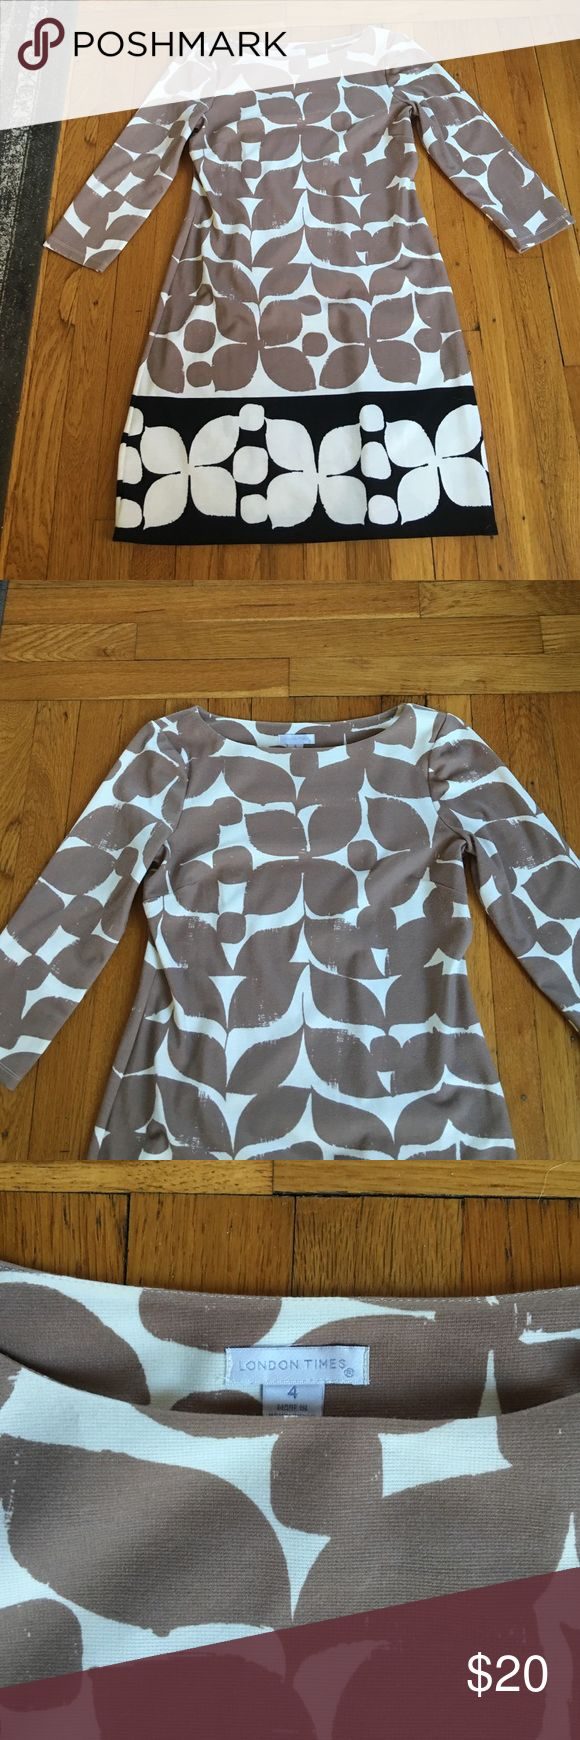 Great condition, beige, white and black dress Unique leaf pattern. Perfect for the office or a night out. London Times Dresses Long Sleeve